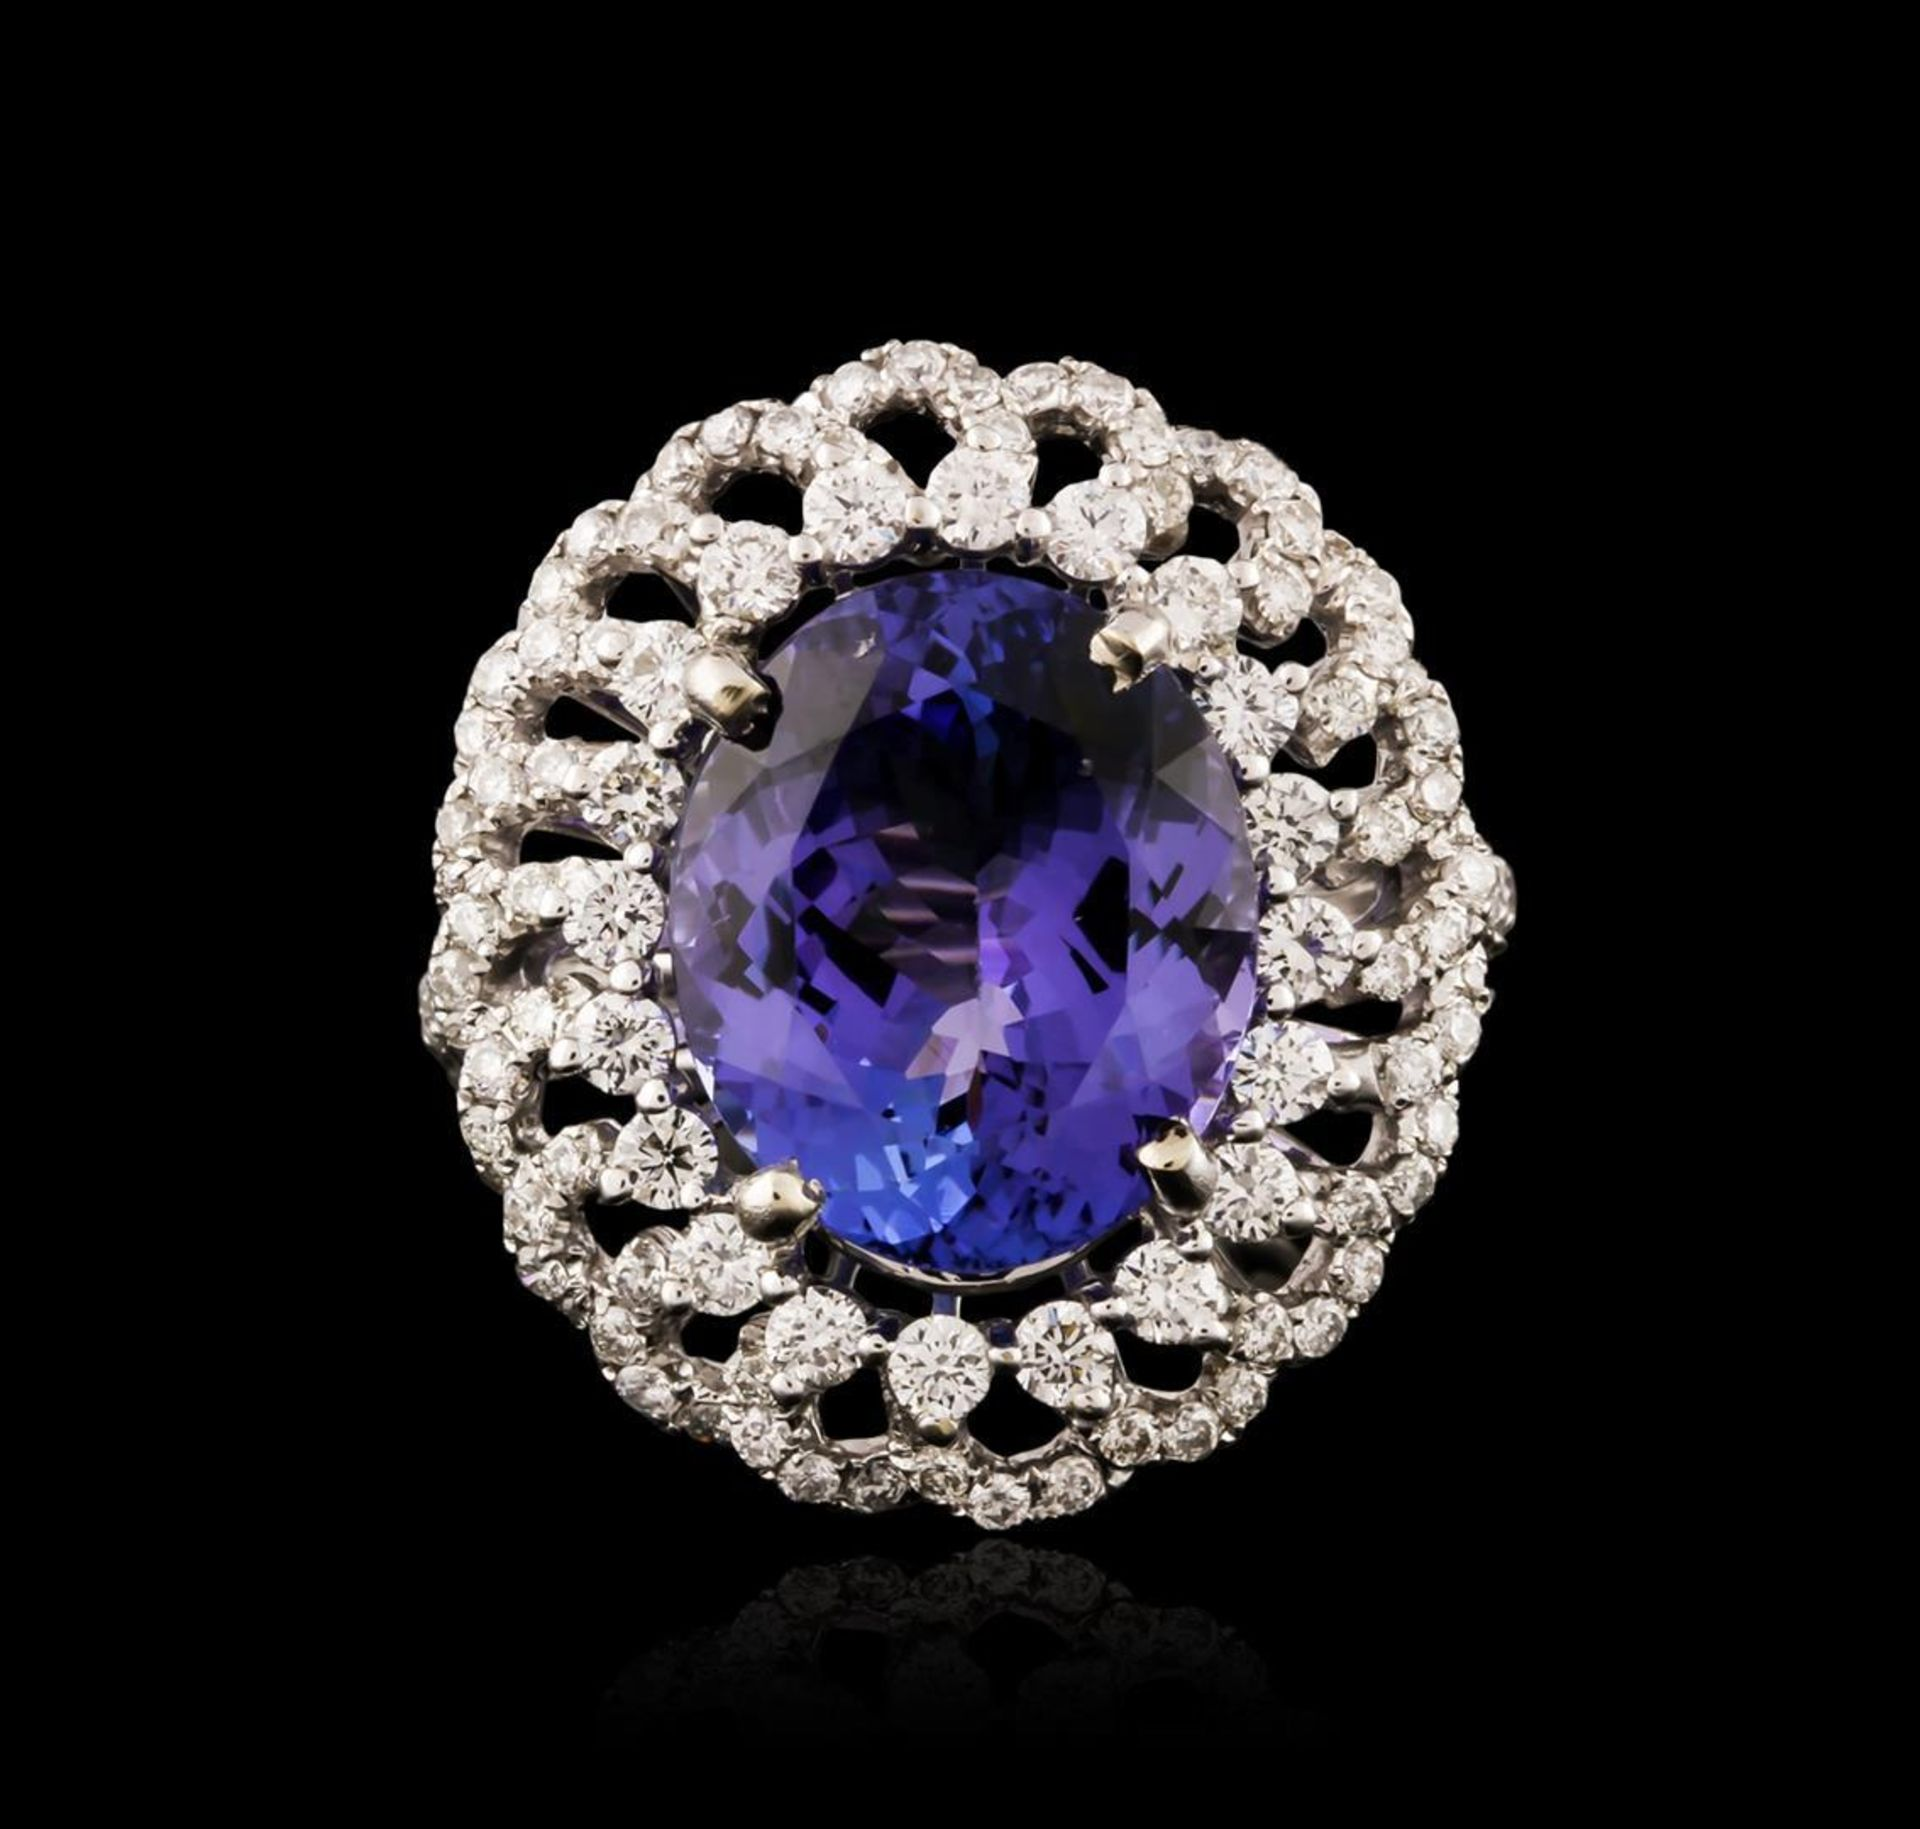 18KT White Gold 9.02 ctw Tanzanite and Diamond Ring - Image 2 of 3